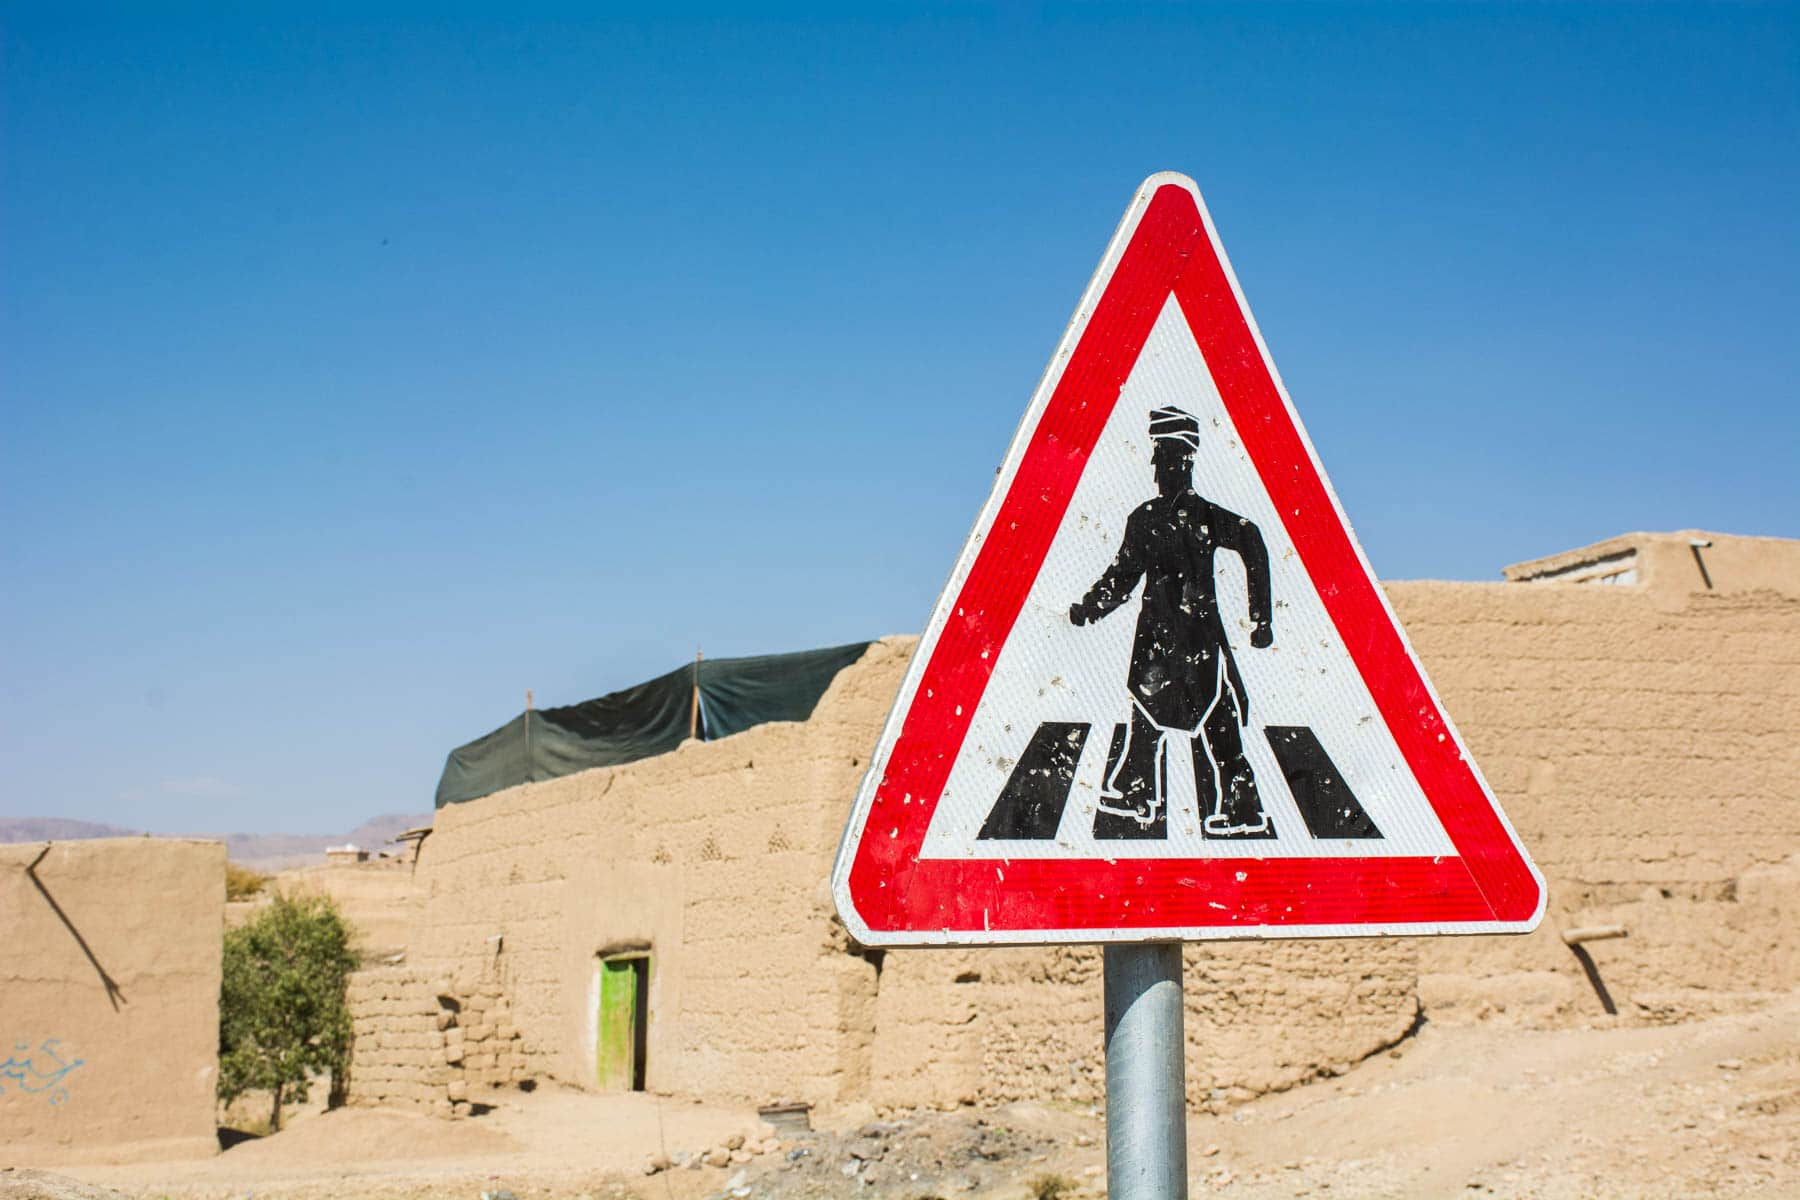 A road sign in Afghanistan - Lost With Purpose